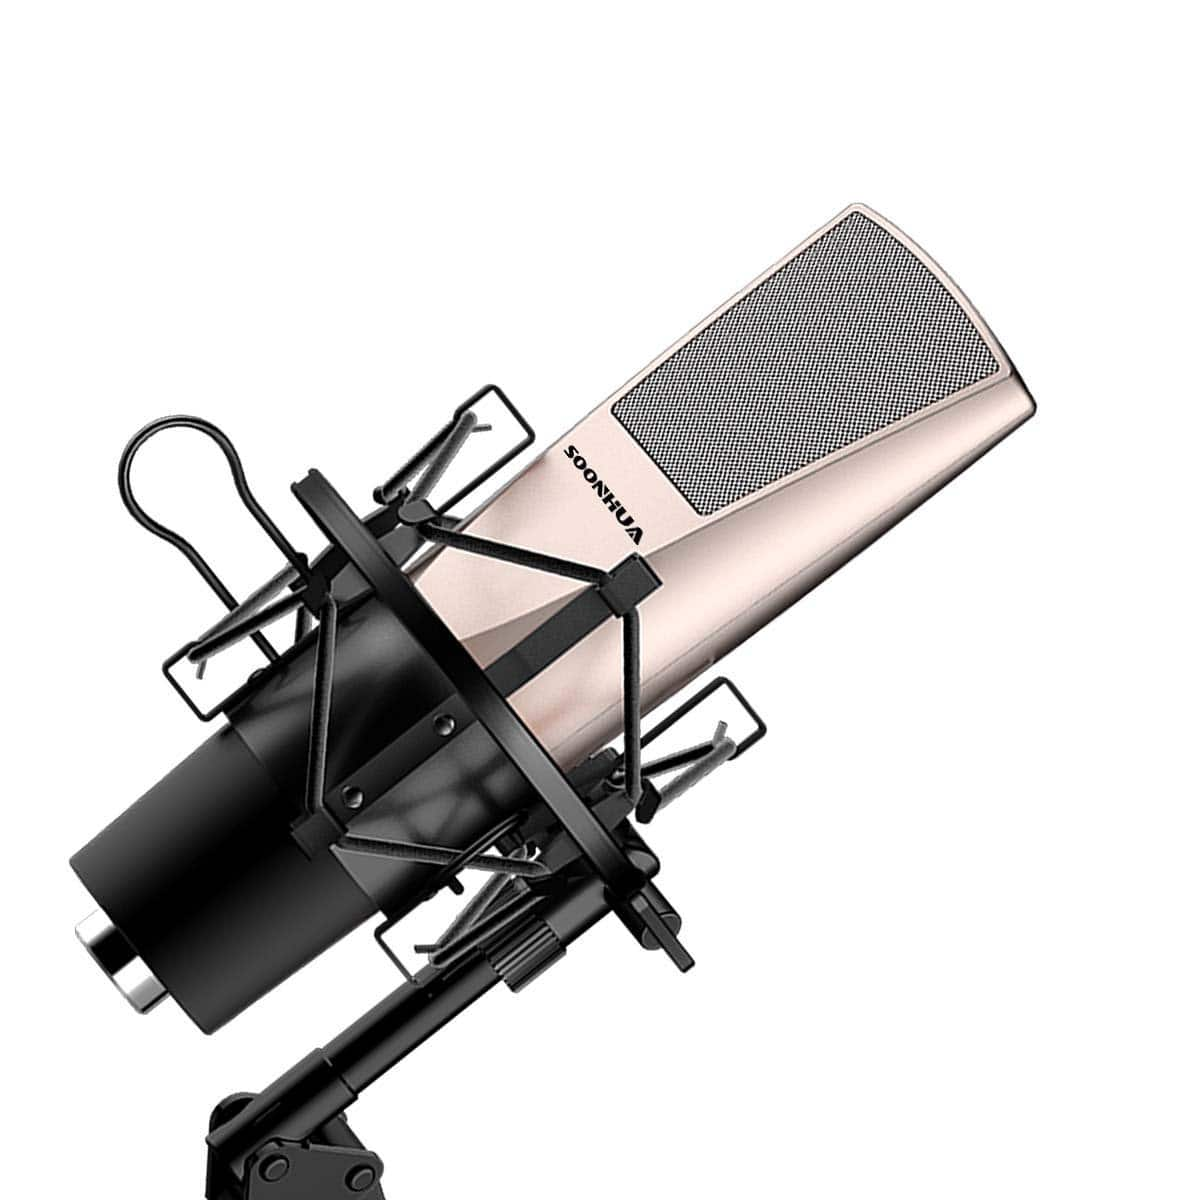 Condenser Microphone for PC, SOONHUA Professional Recording Microphone 3.5mm Studio Microphone with Shock Mount $15.99 Amazon